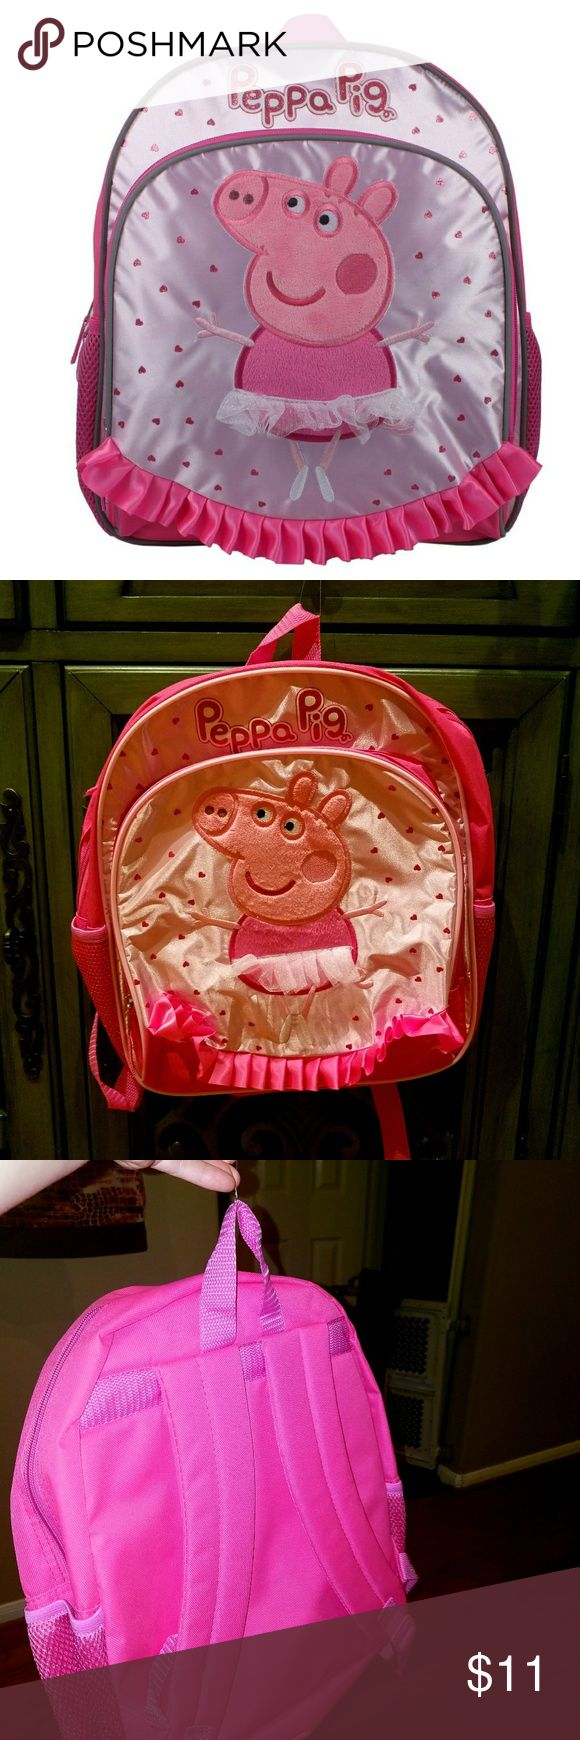 Brand New Peppa Pig backpack Brand New No issues Accessories Bags